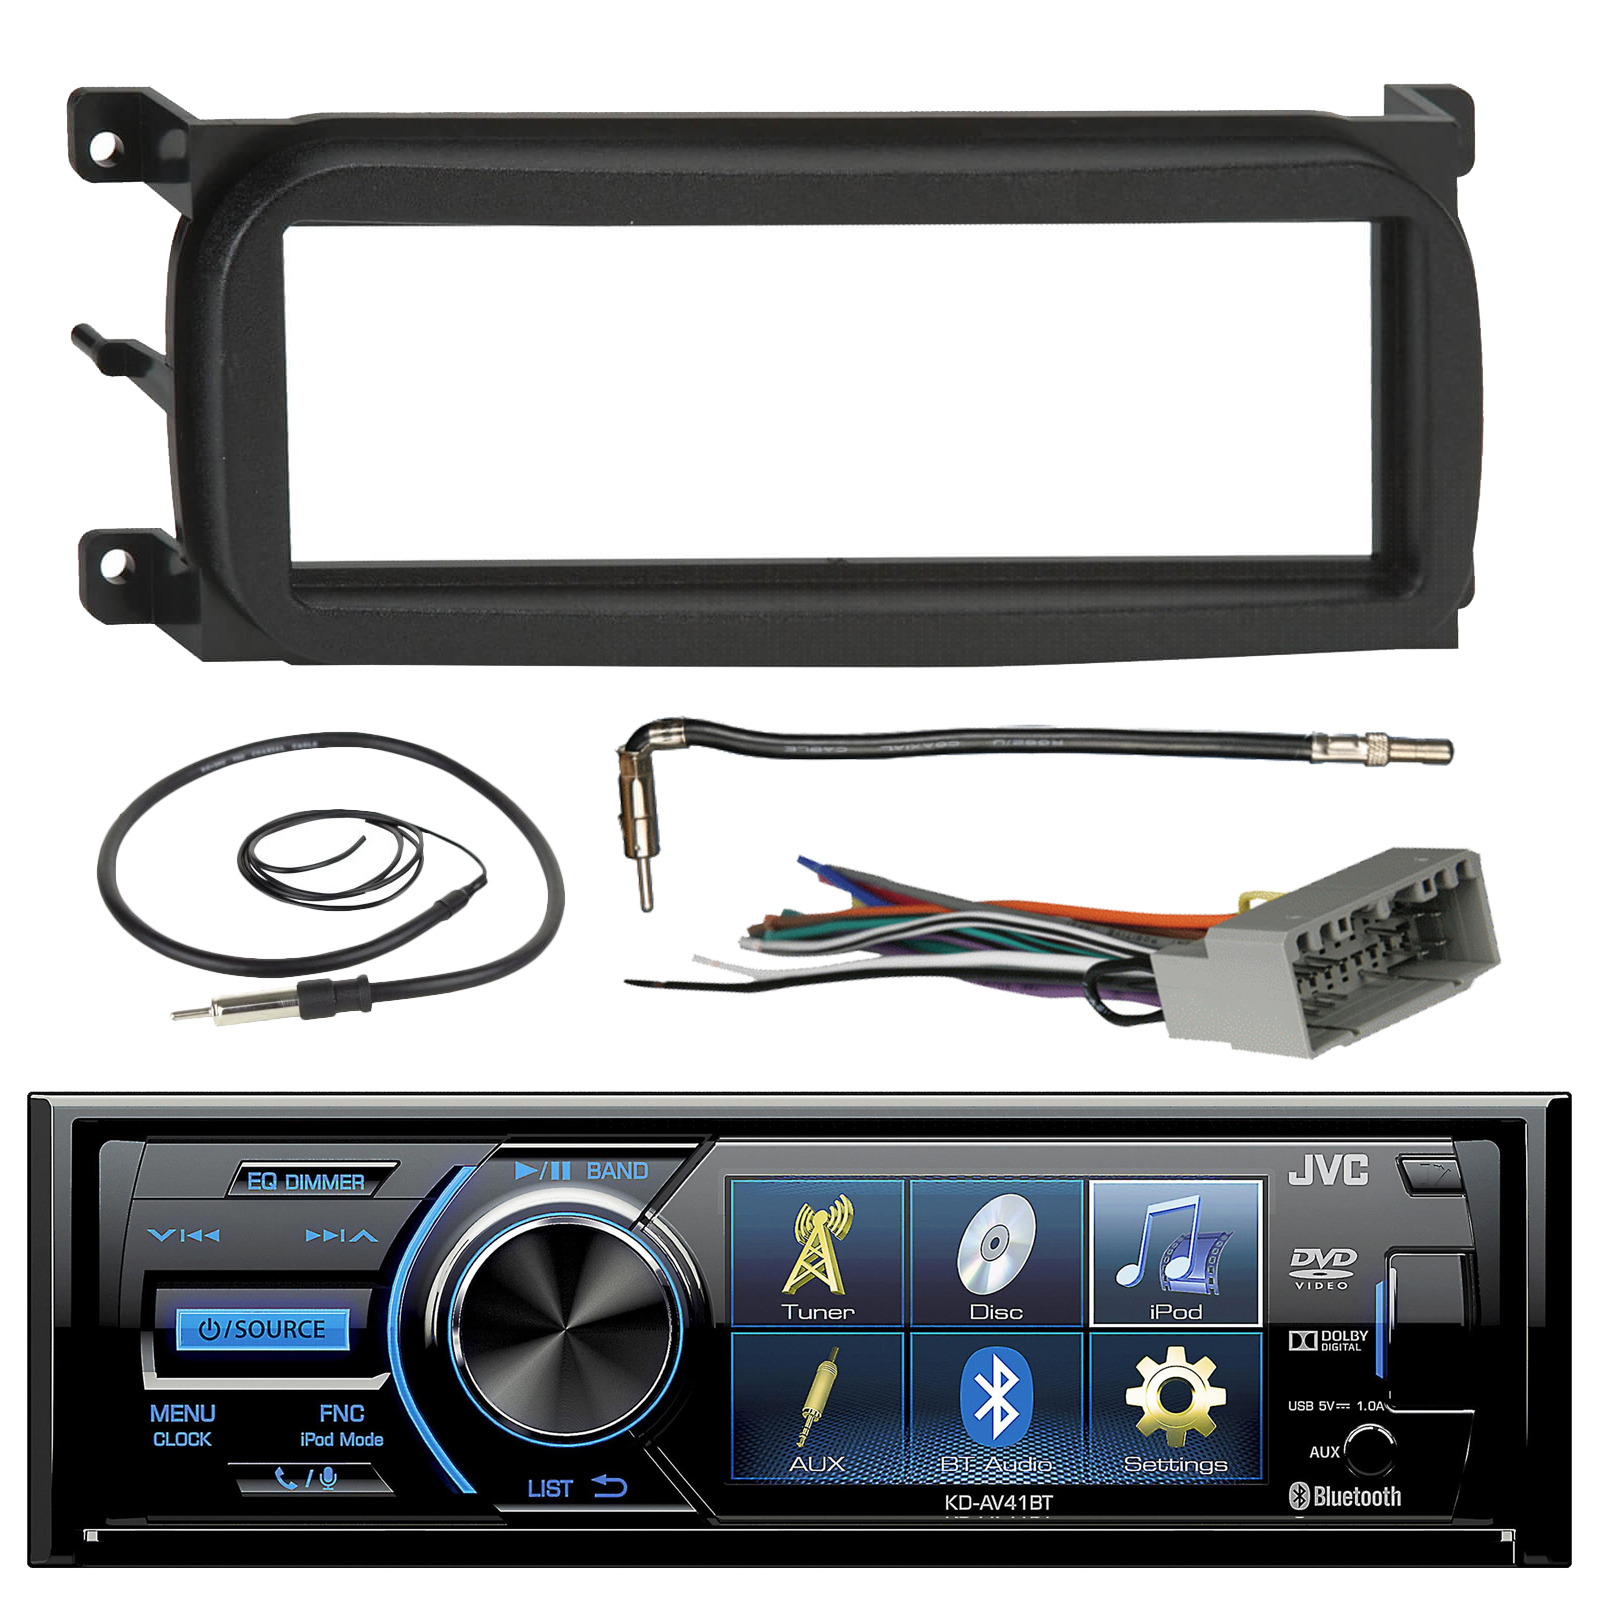 "JVC KD-AV41BT 3"" Inch Bluetooth In-Dash CD Car Stereo Audio Receiver Bundle Combo W/ Metra Install Kit For 1998-Up Chrysler/Dodge/Jeep Cars + Radio Wiring Harness + Enrock Antenna W/ Adapter Cable"